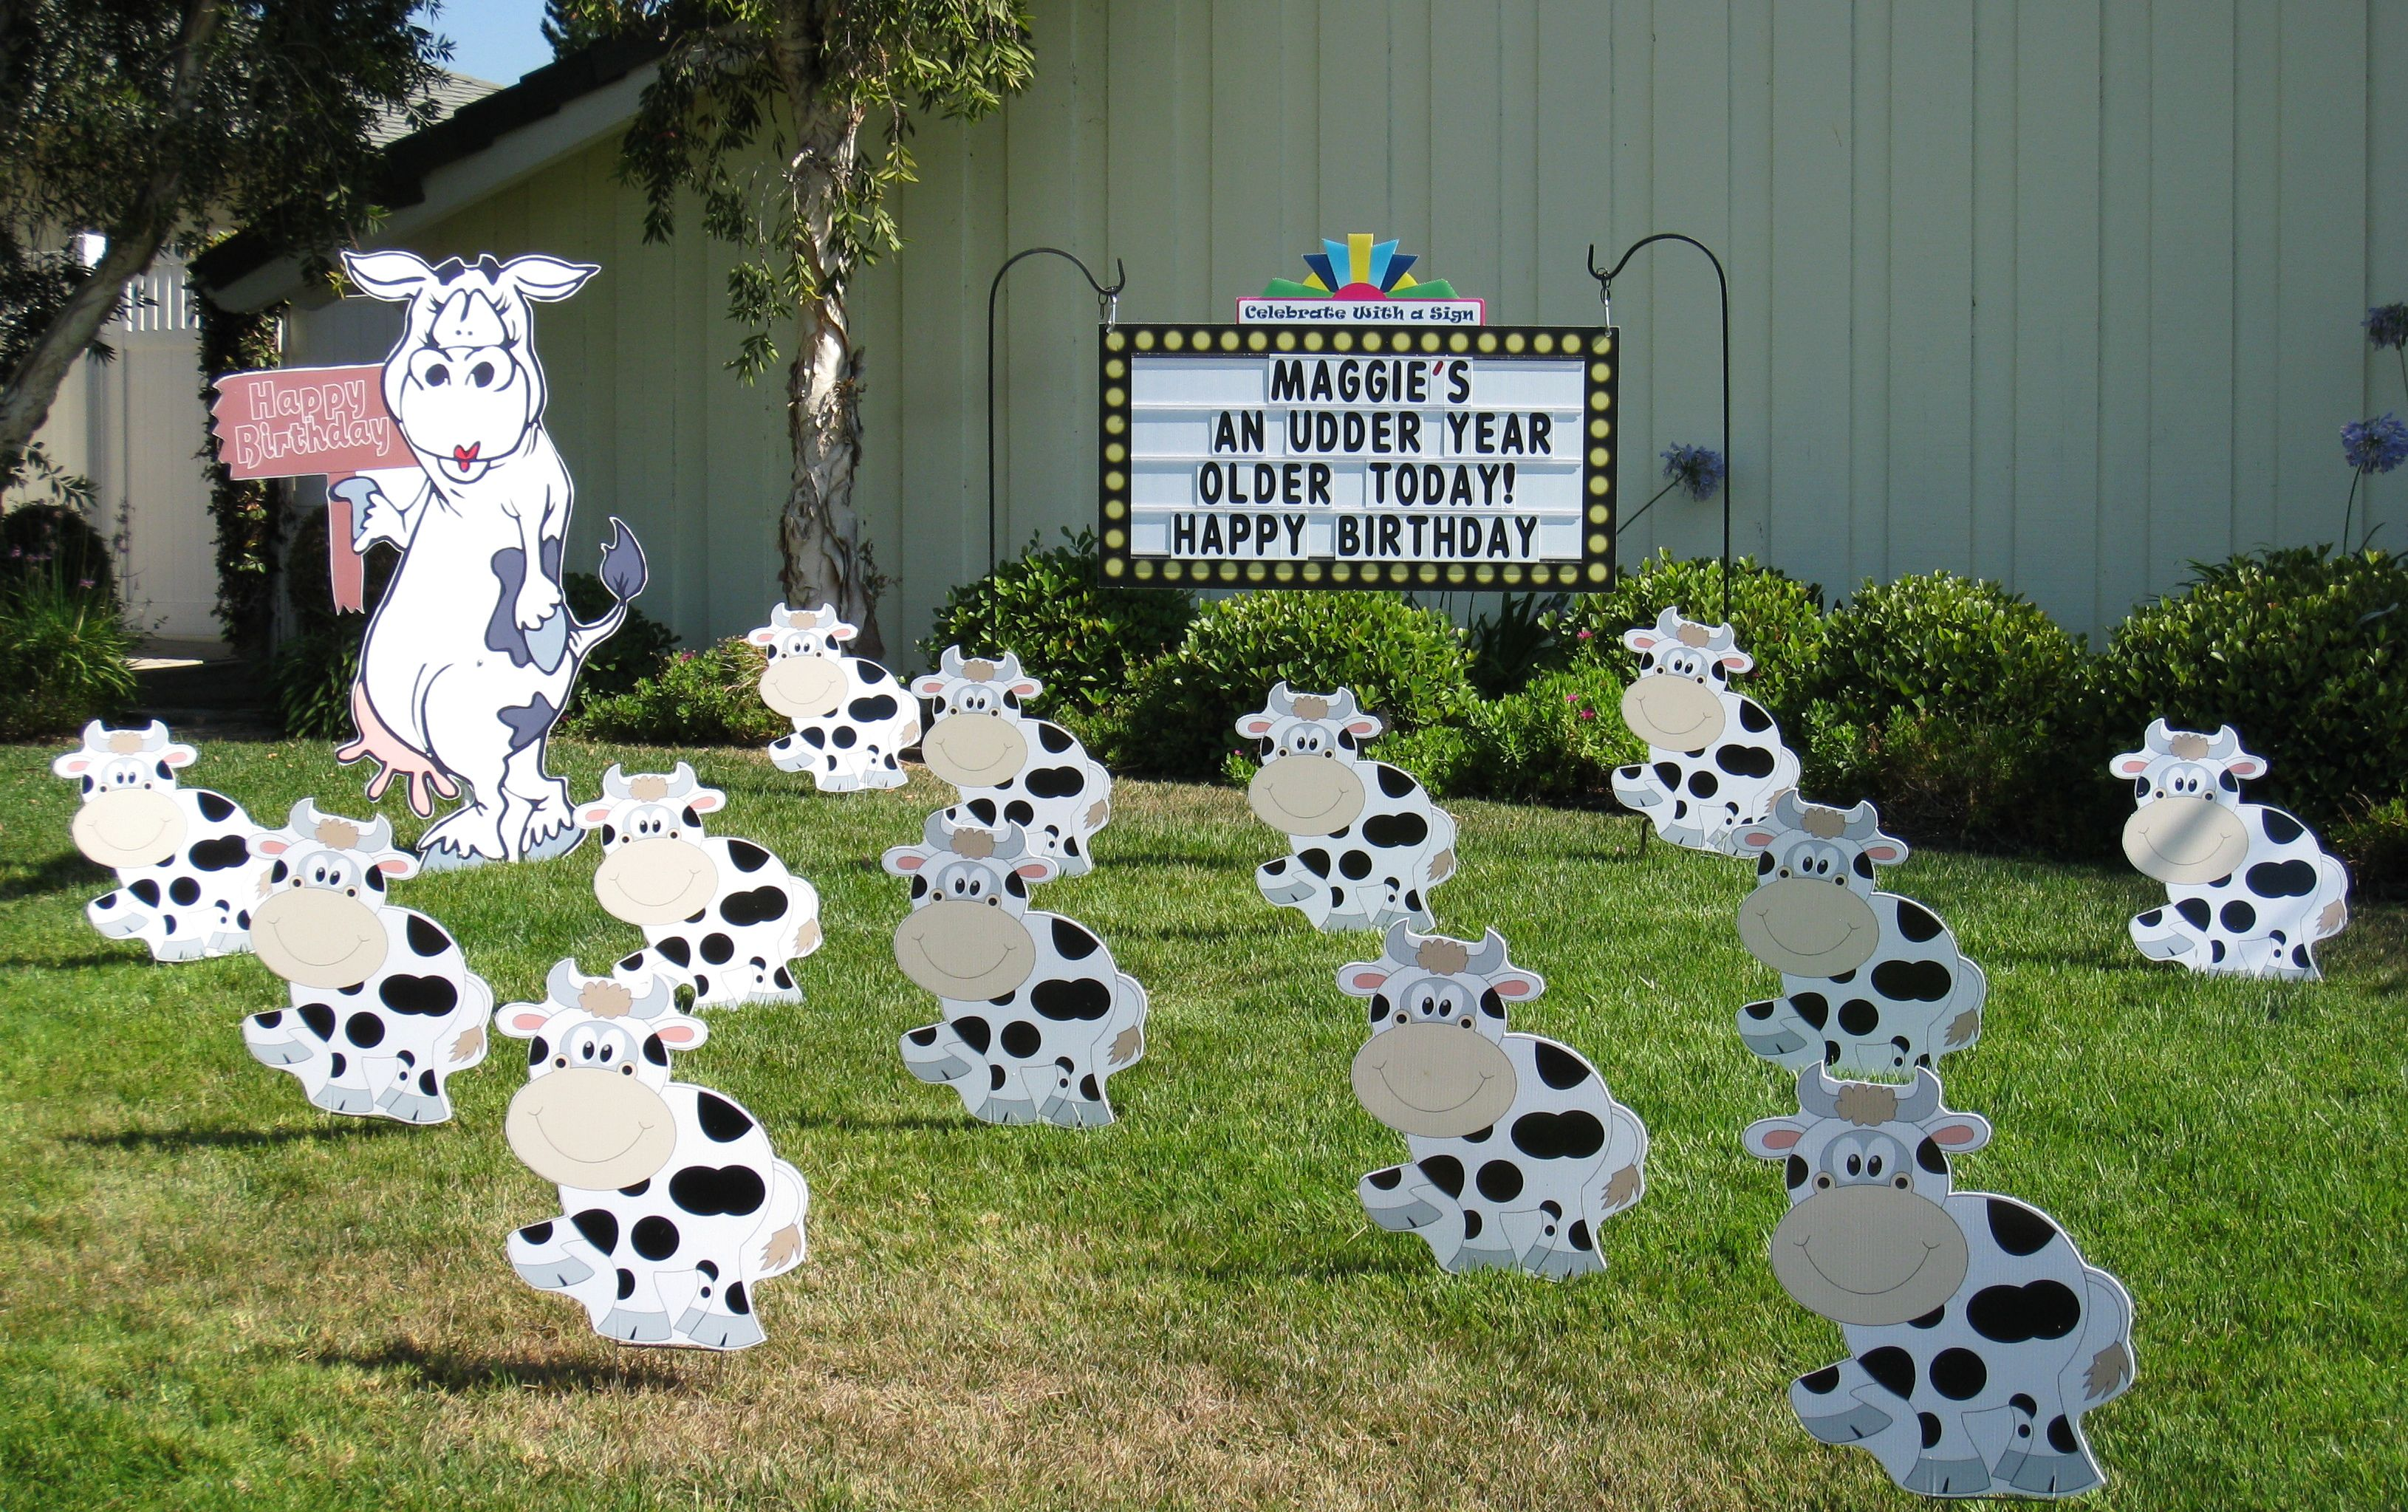 Birthday Cow Lawn Prank Gn Says Maggie S An Udder Year